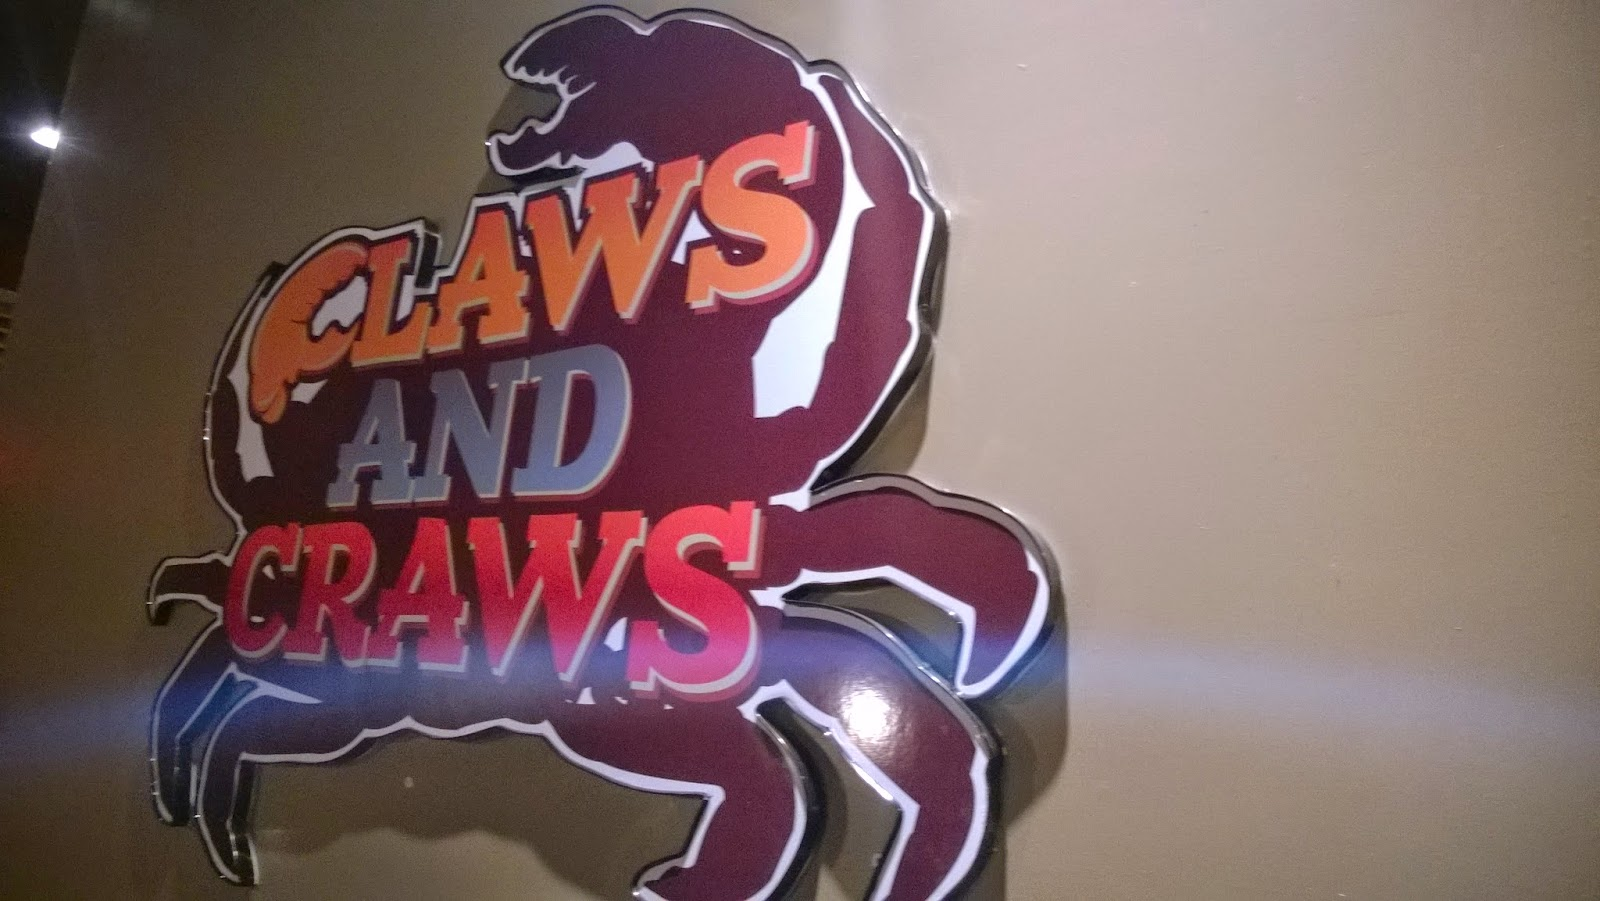 Claws and Craws